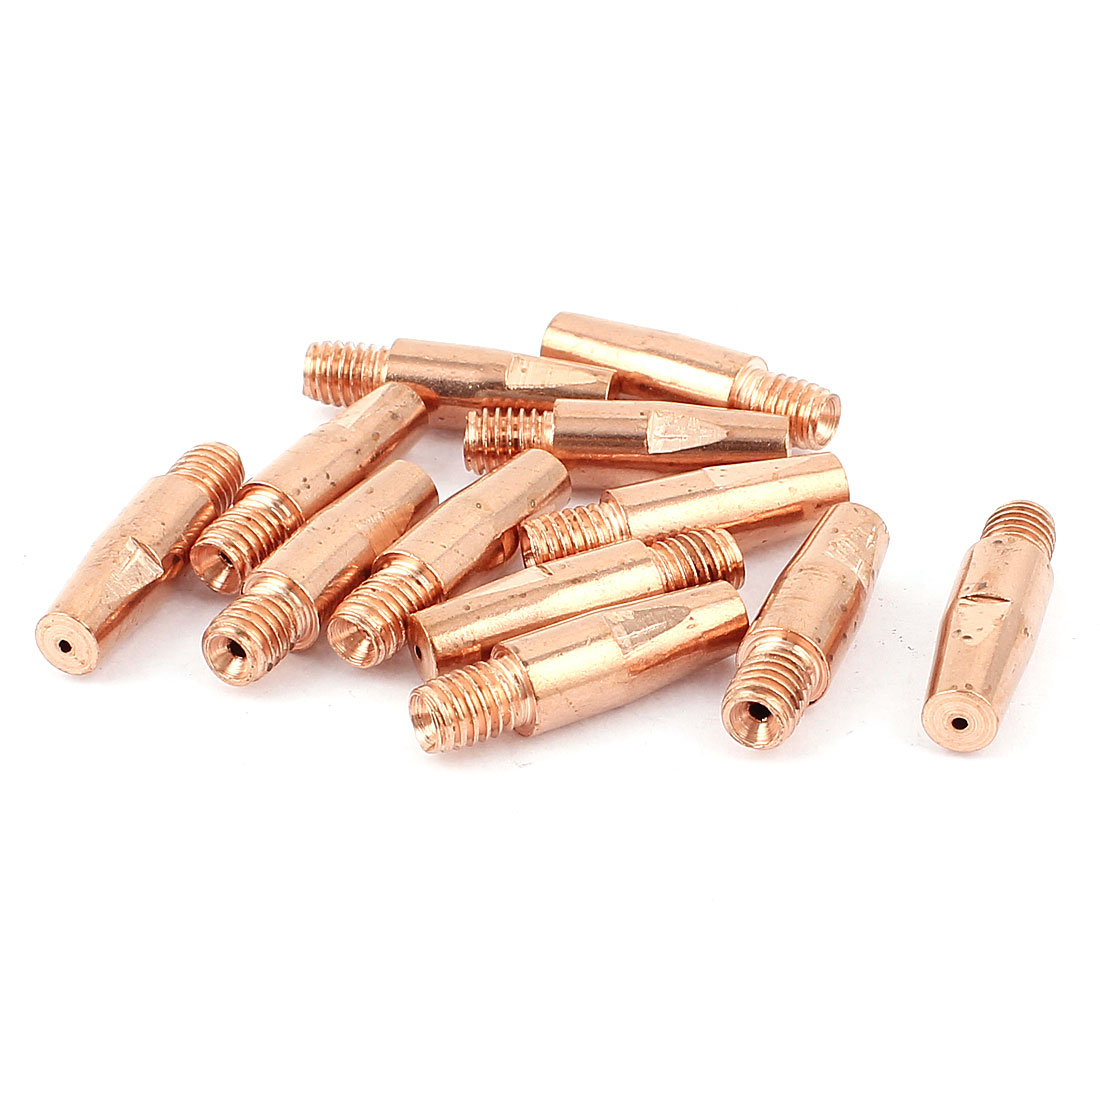 CO2 Welding Solder Torch 0.8mm Nozzle Tip Holder Copper Tone 12 Pcs